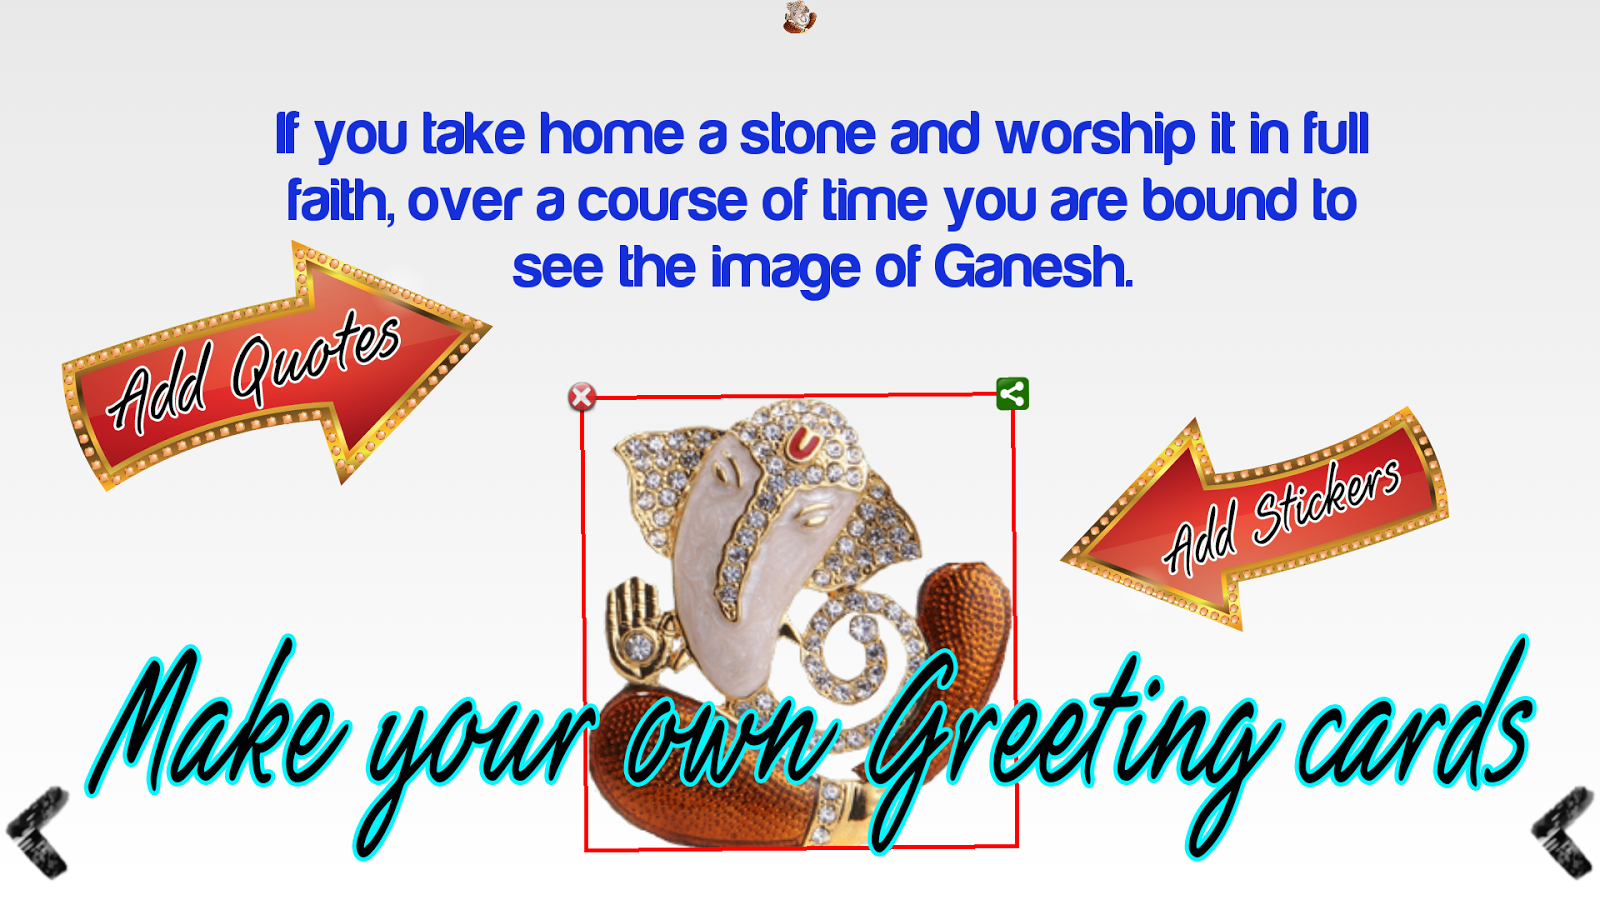 Ganesh chaturthi greeting card android apps on google play ganesh chaturthi greeting card screenshot kristyandbryce Image collections